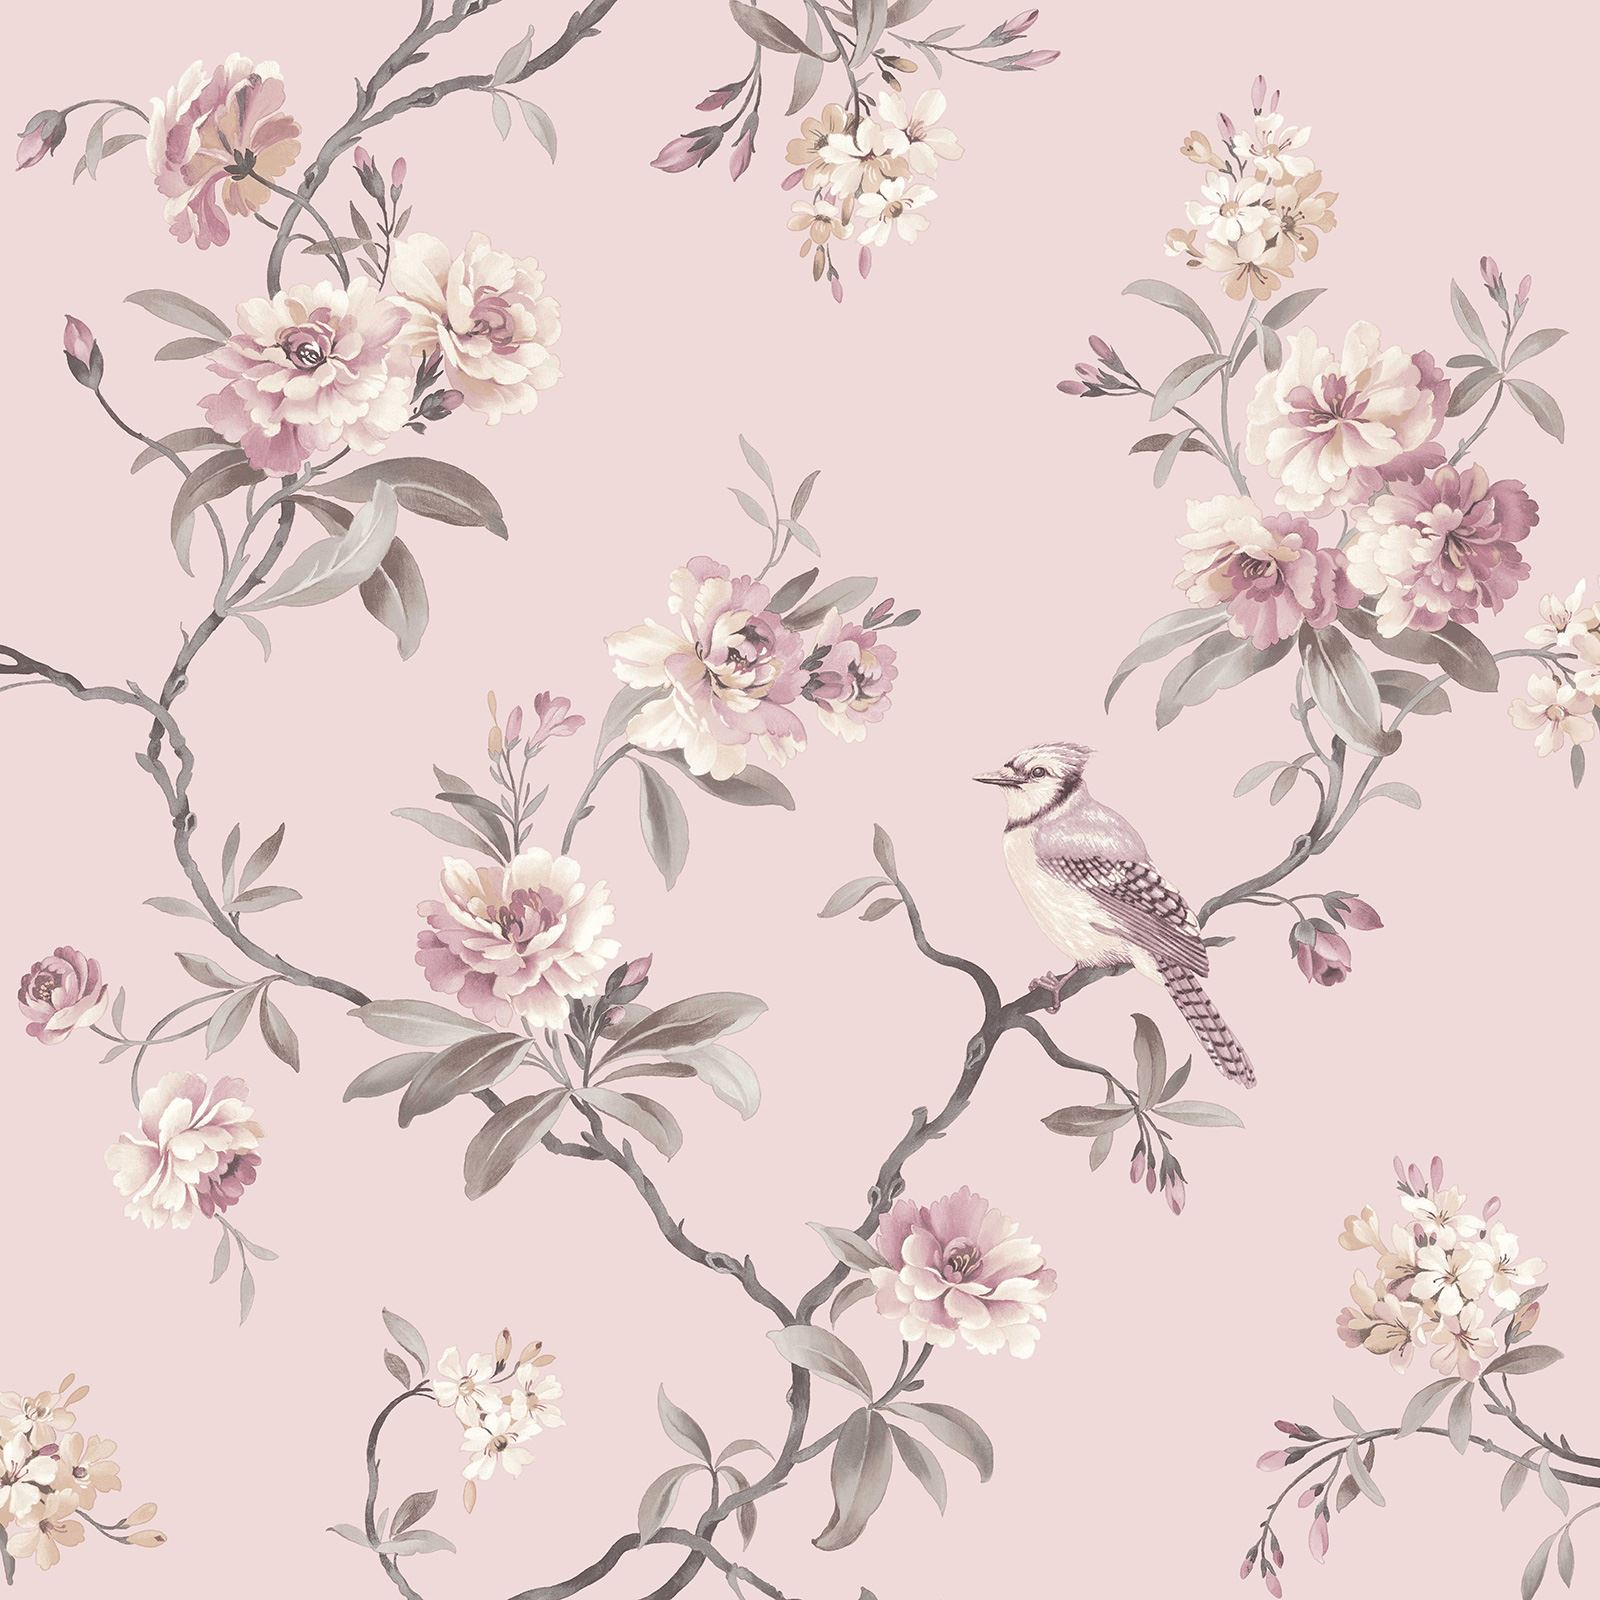 Liverpool Live Wallpaper Iphone Fine Decor Chic Floral Chinoiserie Bird Wallpaper In Grey